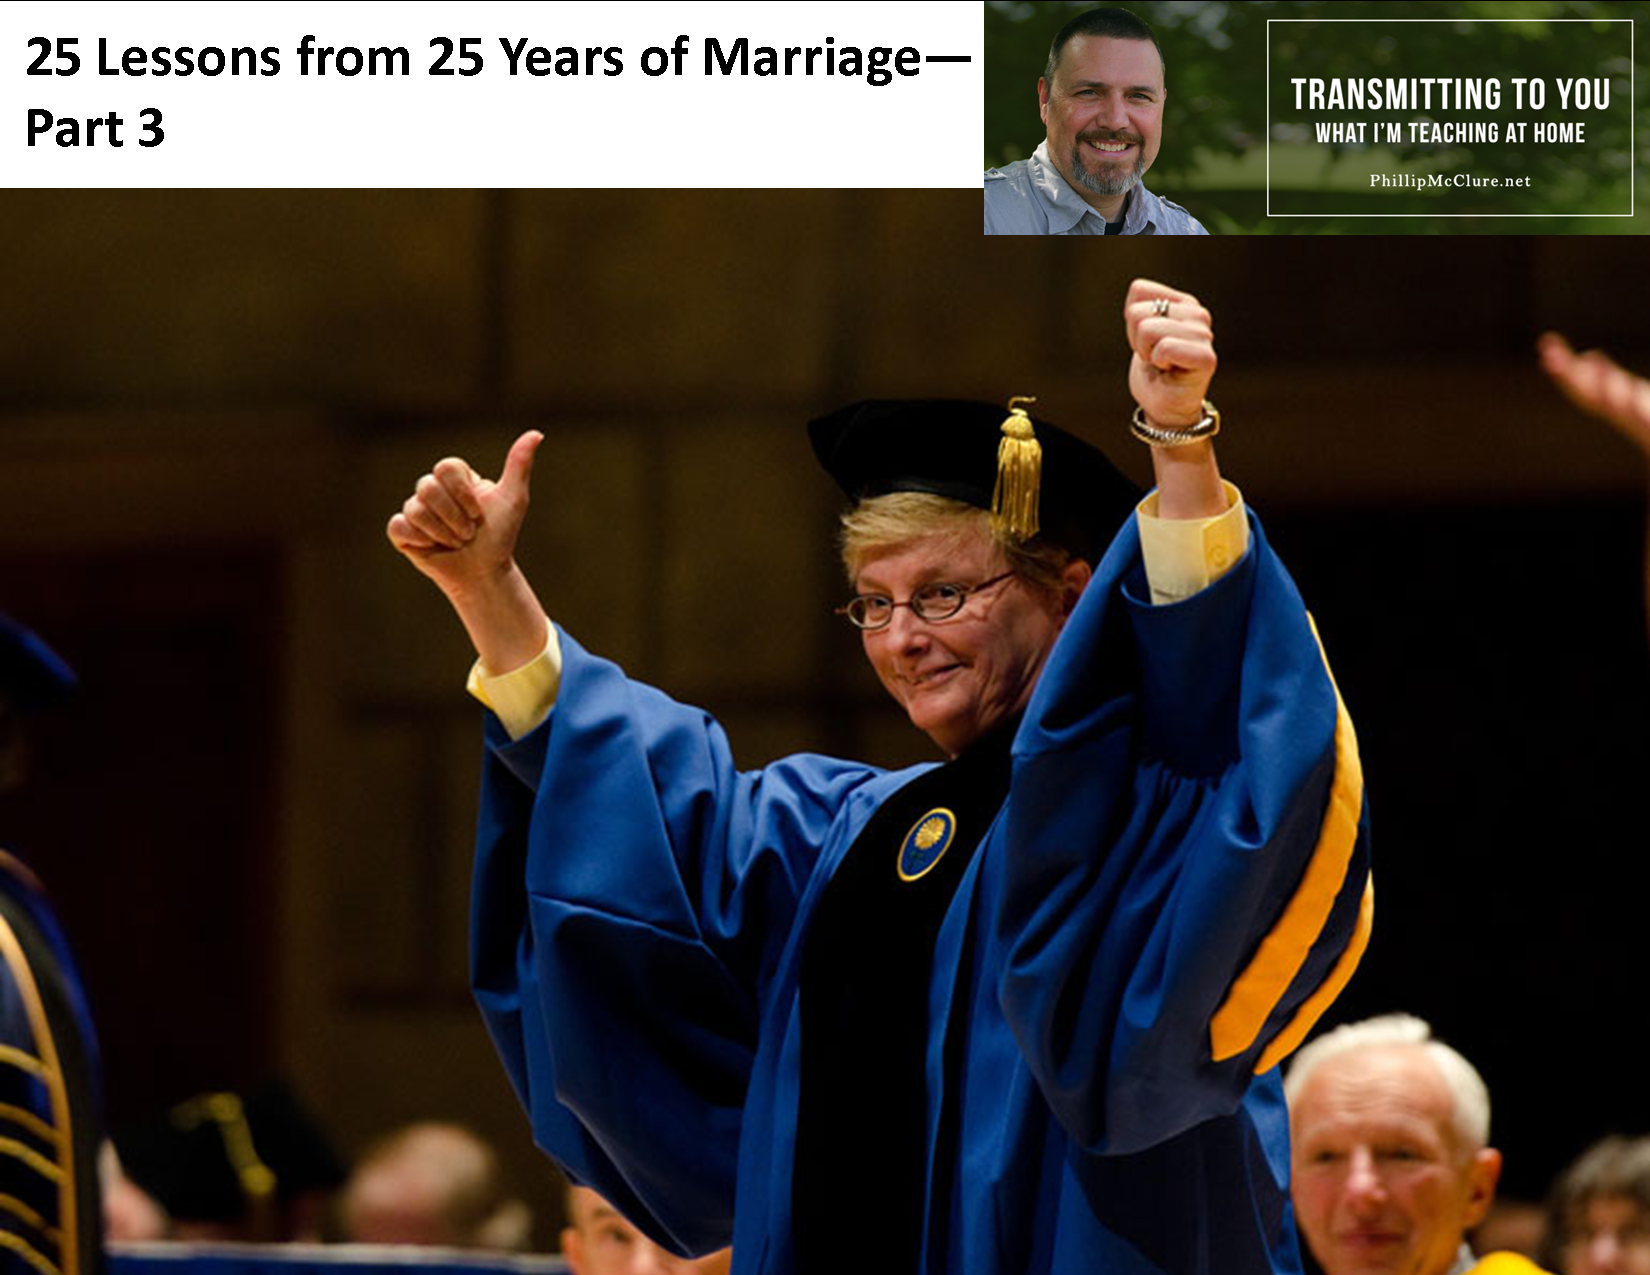 25 lessons from 25 years of marriage part 3 #dan330